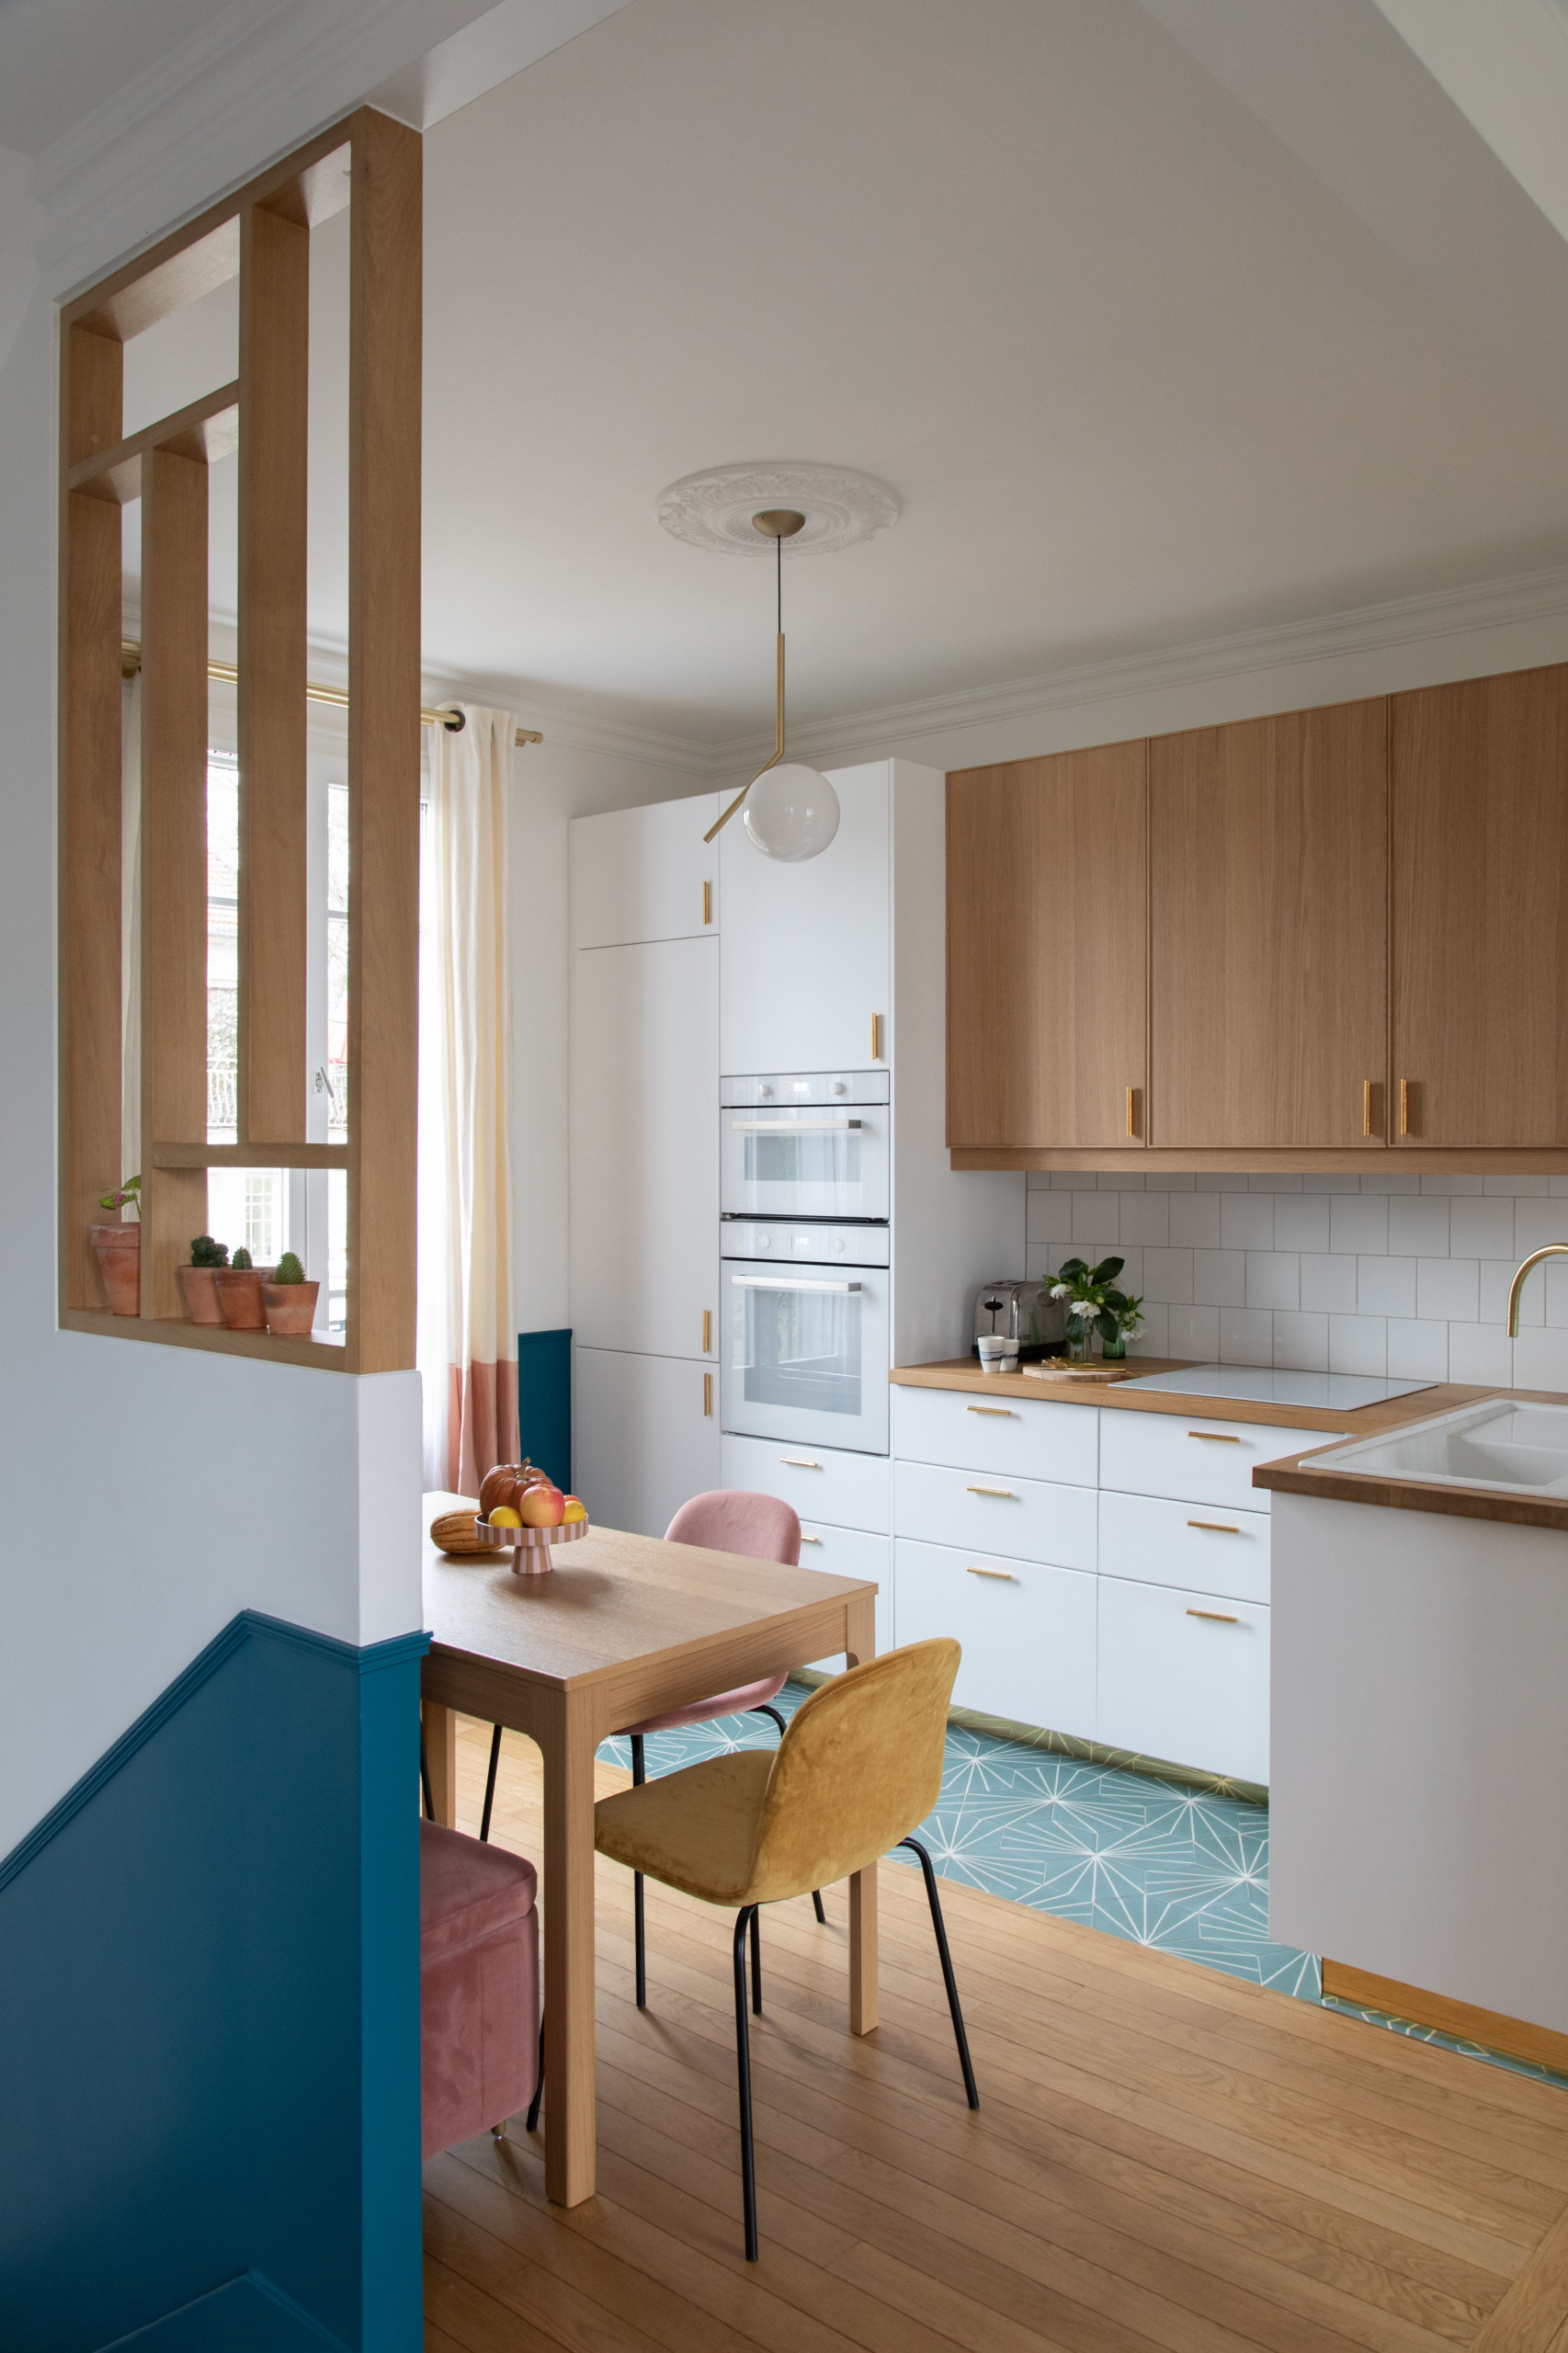 Image of: 75 Beautiful Modern Kitchen With Beaded Inset Cabinets Pictures Ideas November 2020 Houzz